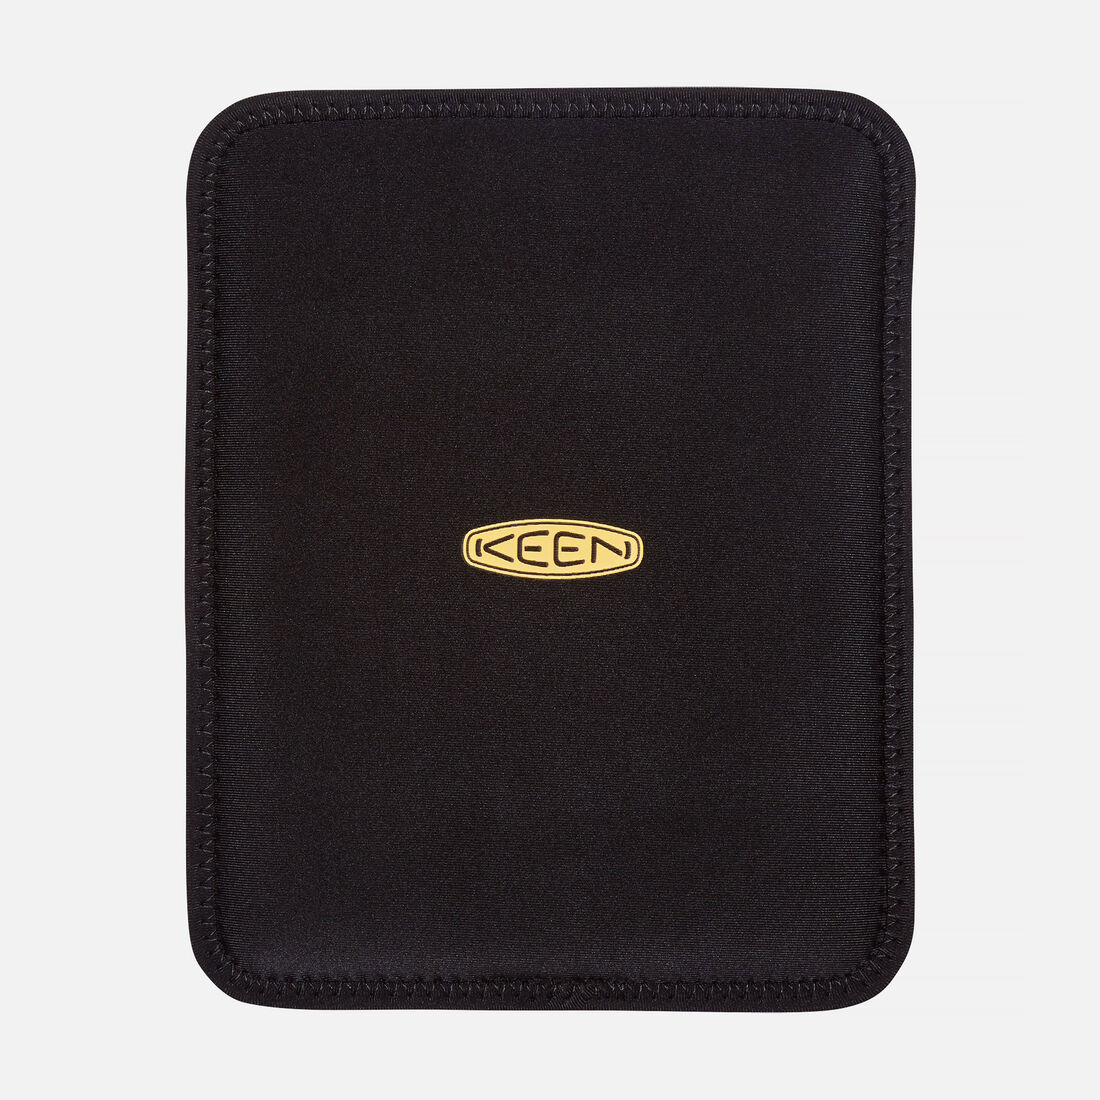 Keen iPad Case in Black - large view.